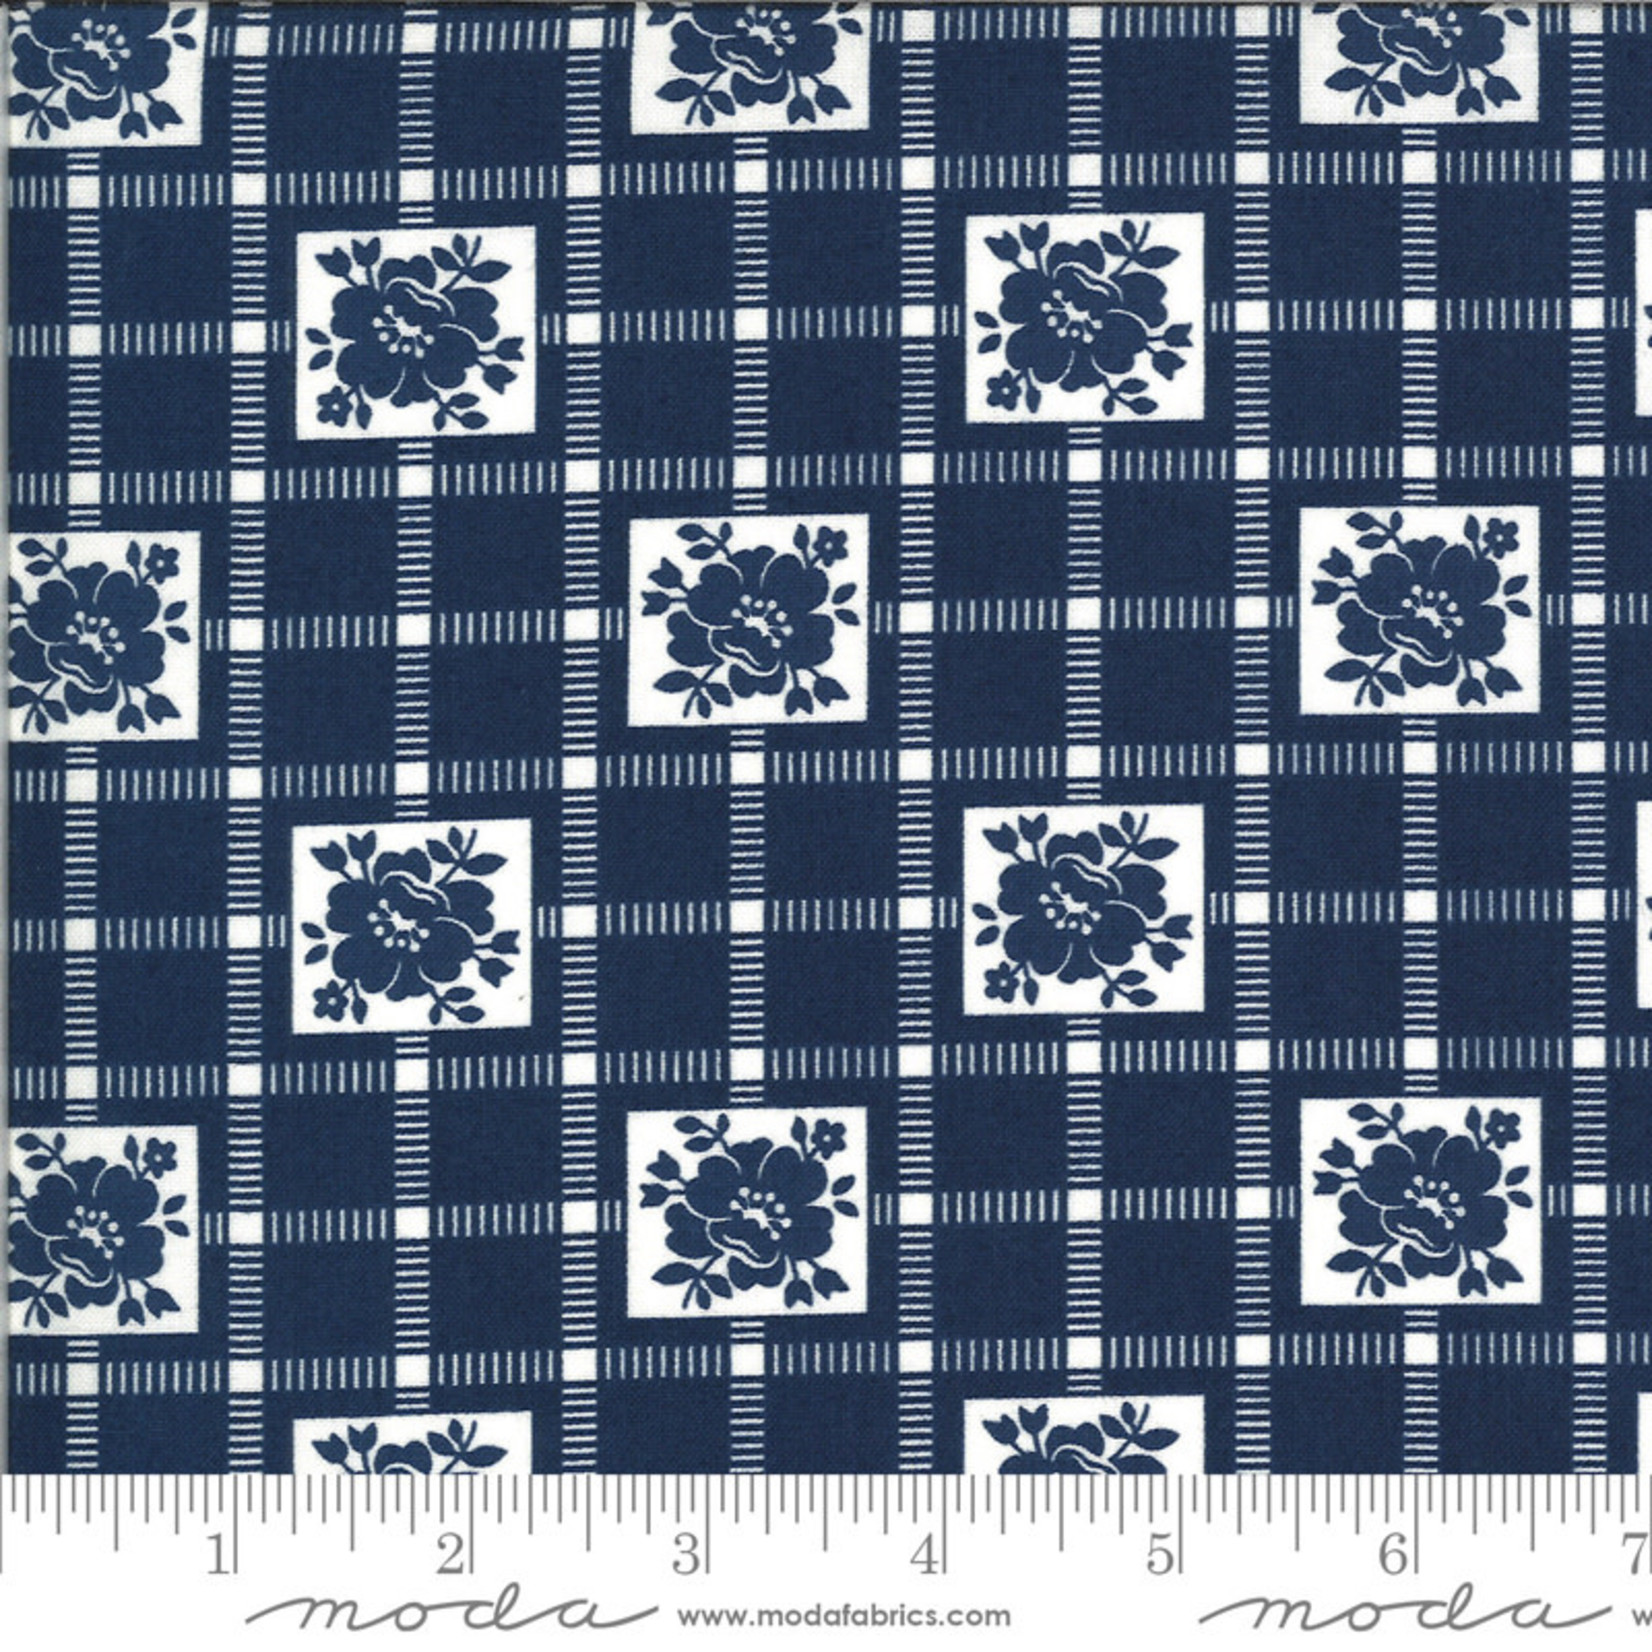 BONNIE & CAMILLE Shine On by Bonnie & Camille, CHECK, NAVY 55212-17 PER CM OR